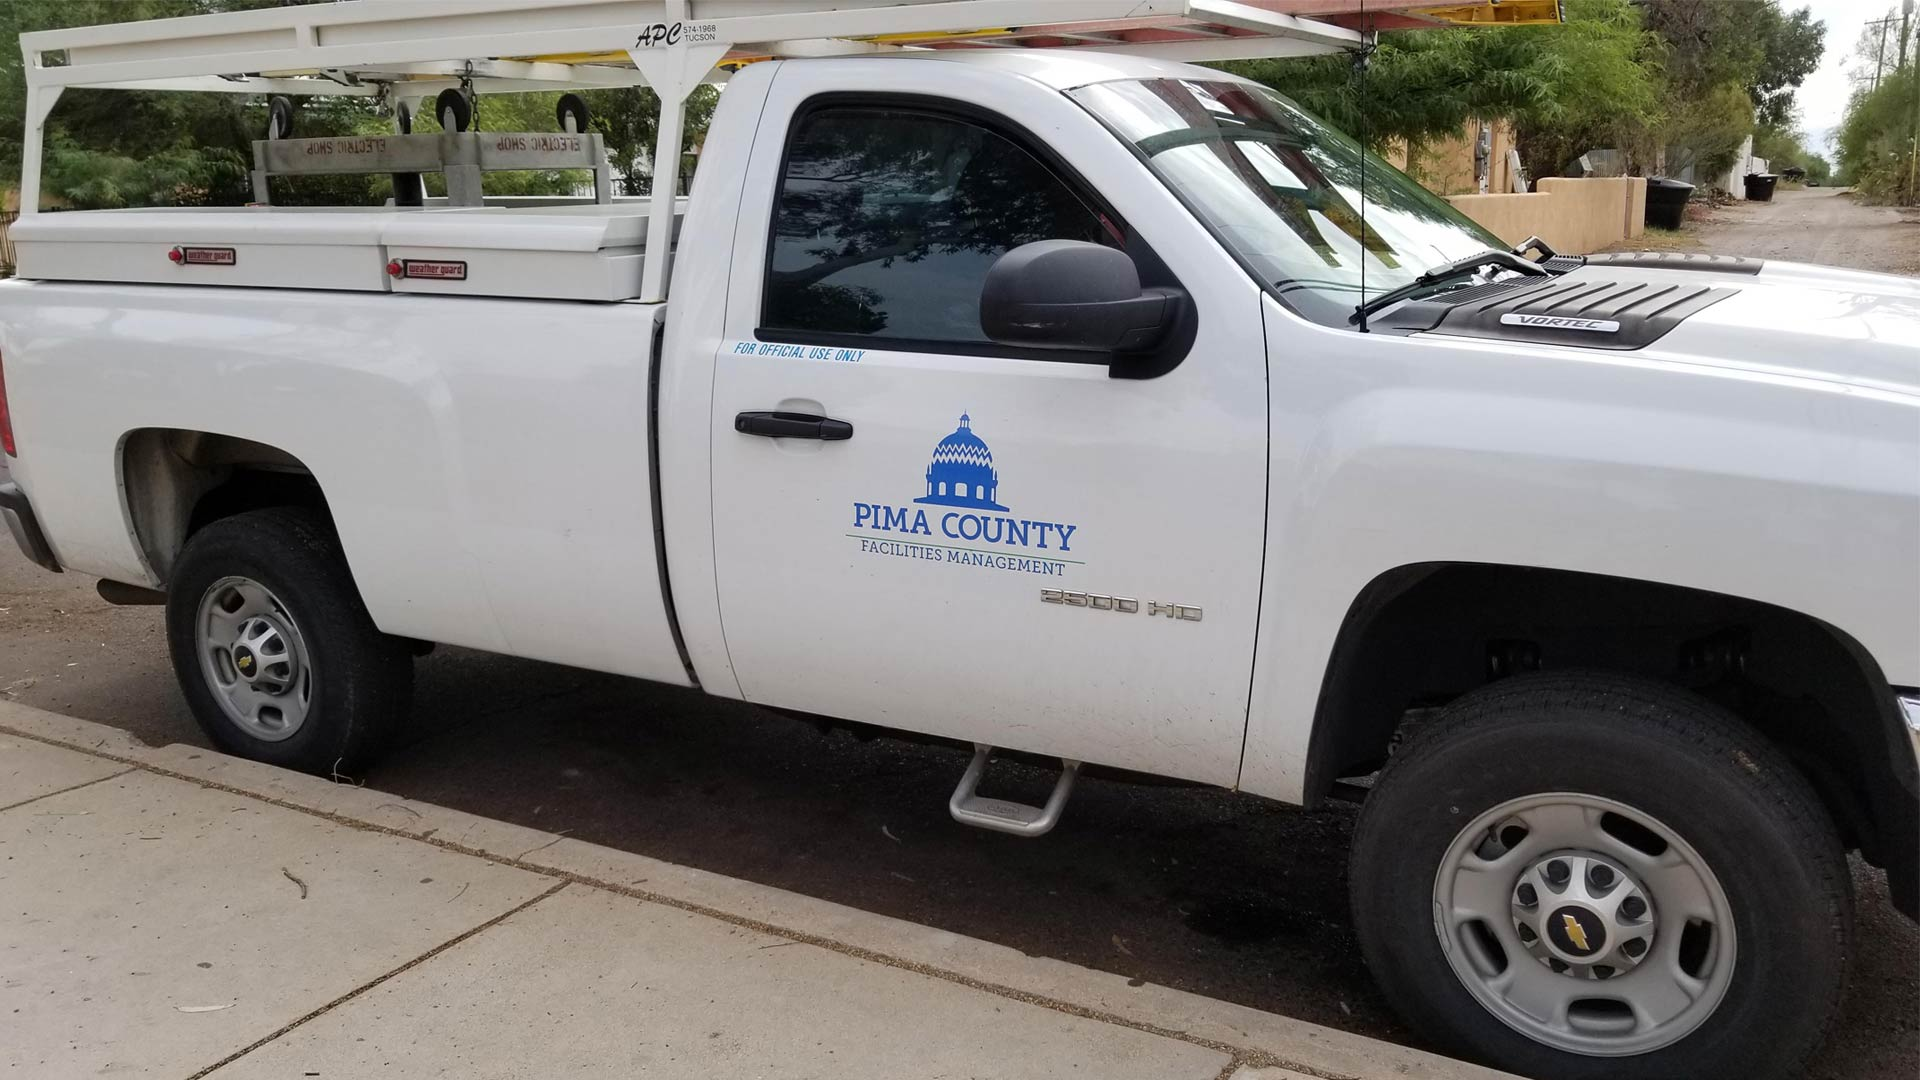 A Pima County Facilities Management truck parked outside Himmel Park, July 2018.